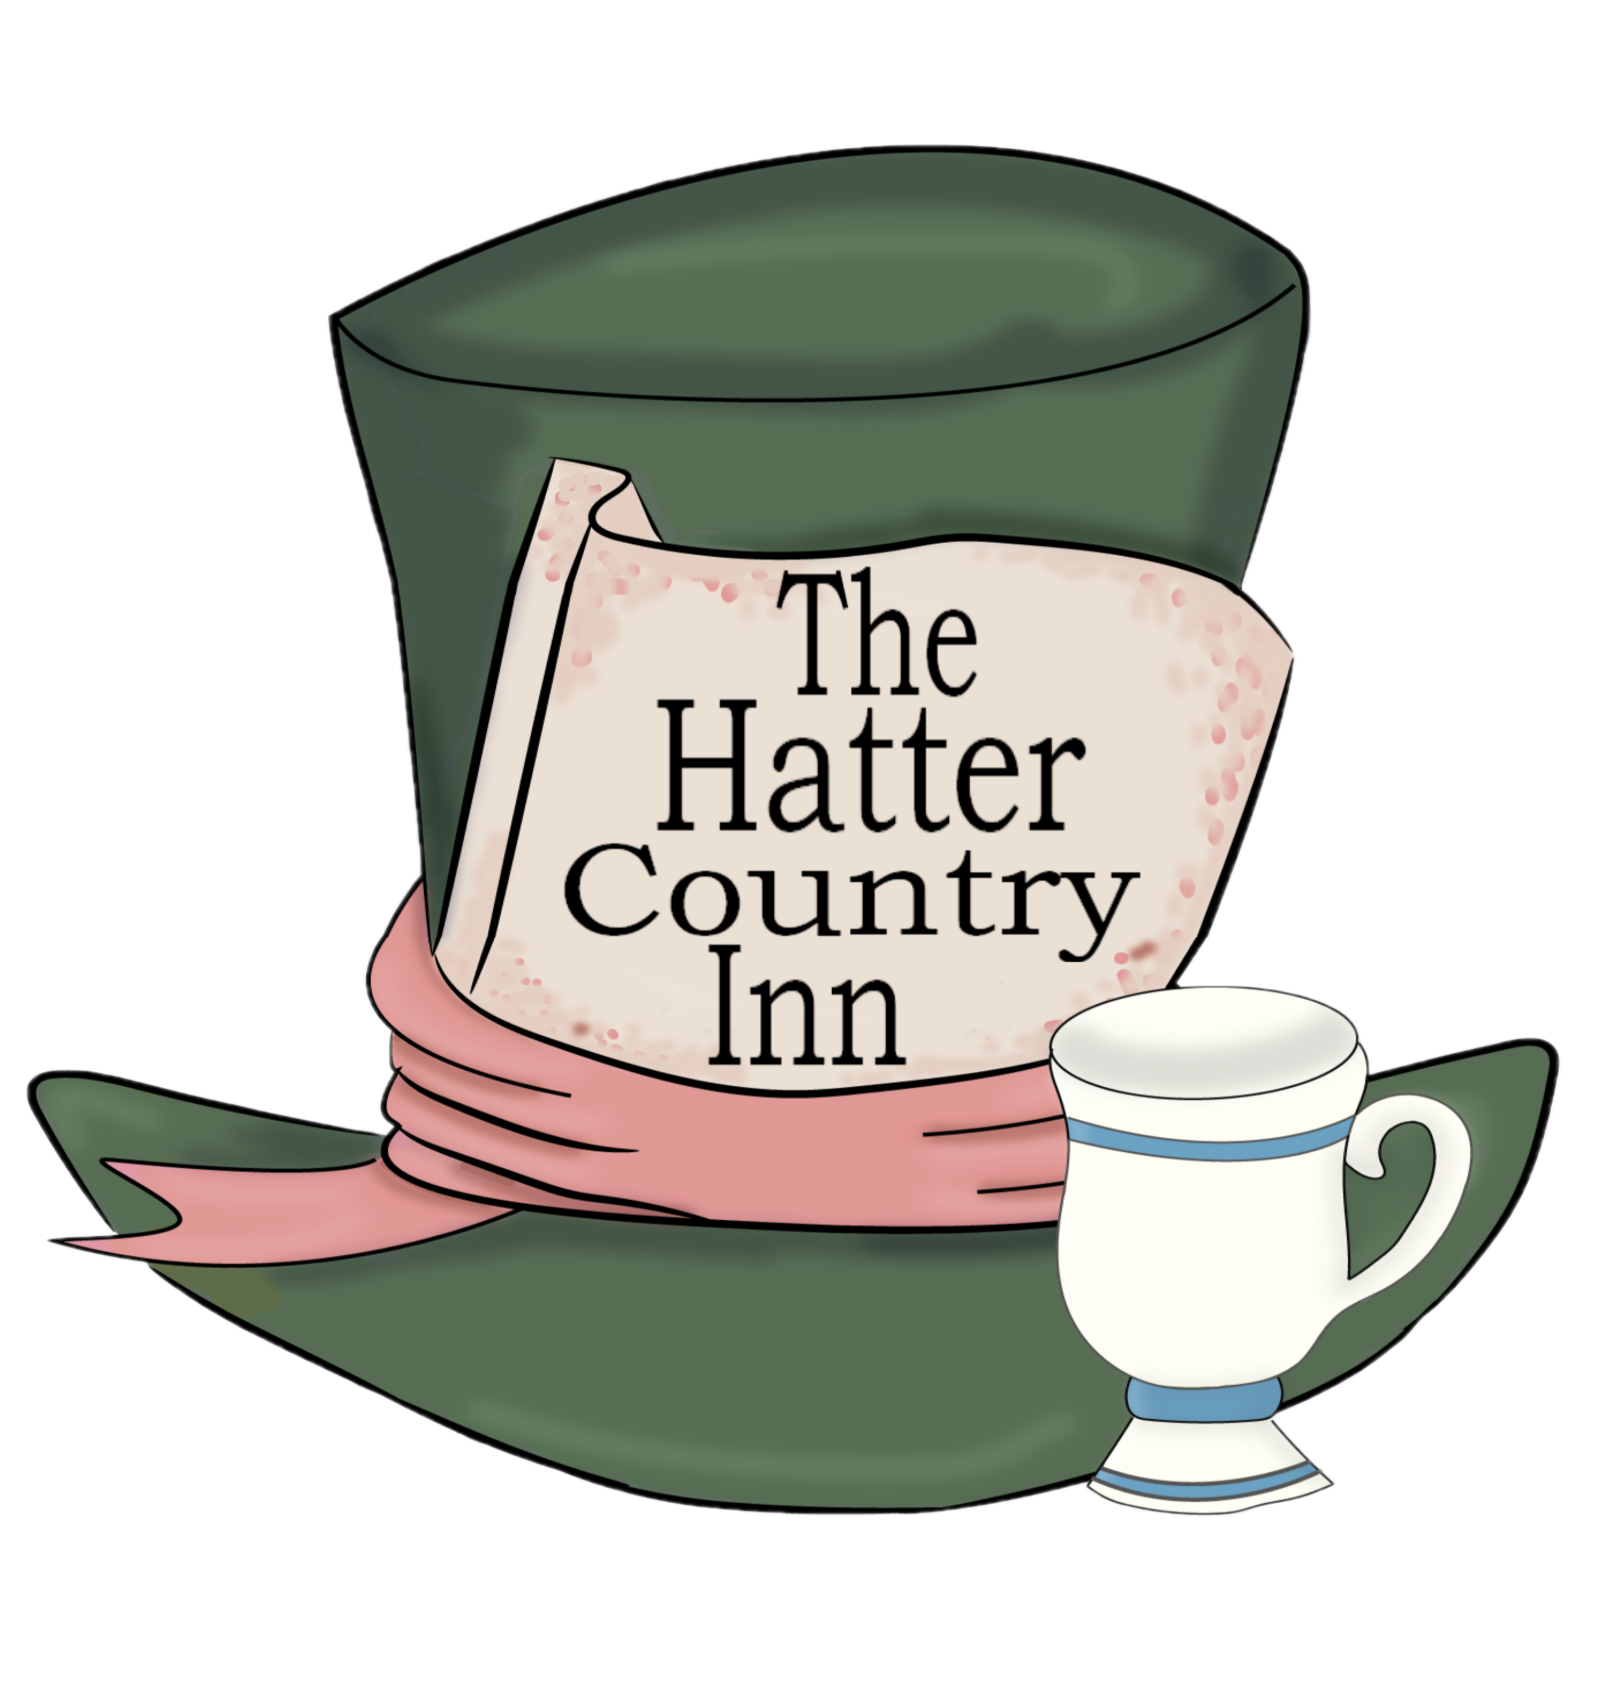 The Hatter Country Inn